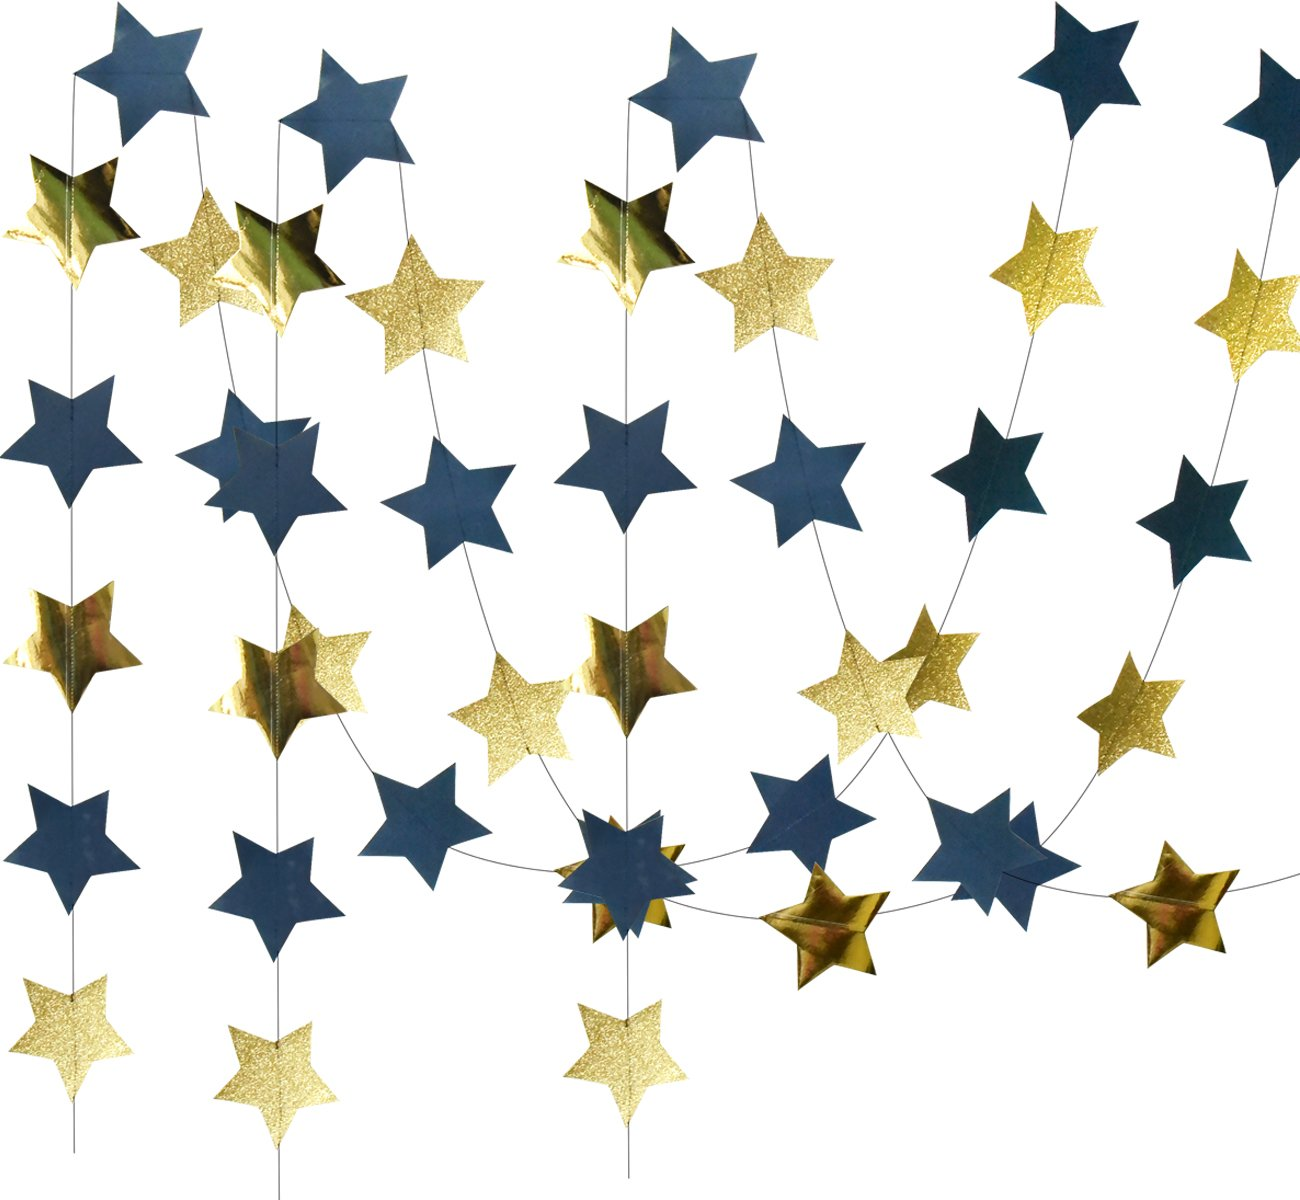 Outer Space Decorations Birthday Party Decorations 2pcs Navy Blue Glitter Gold Paper Star Garlands Star String for Baby Shower Decorations by Furuix